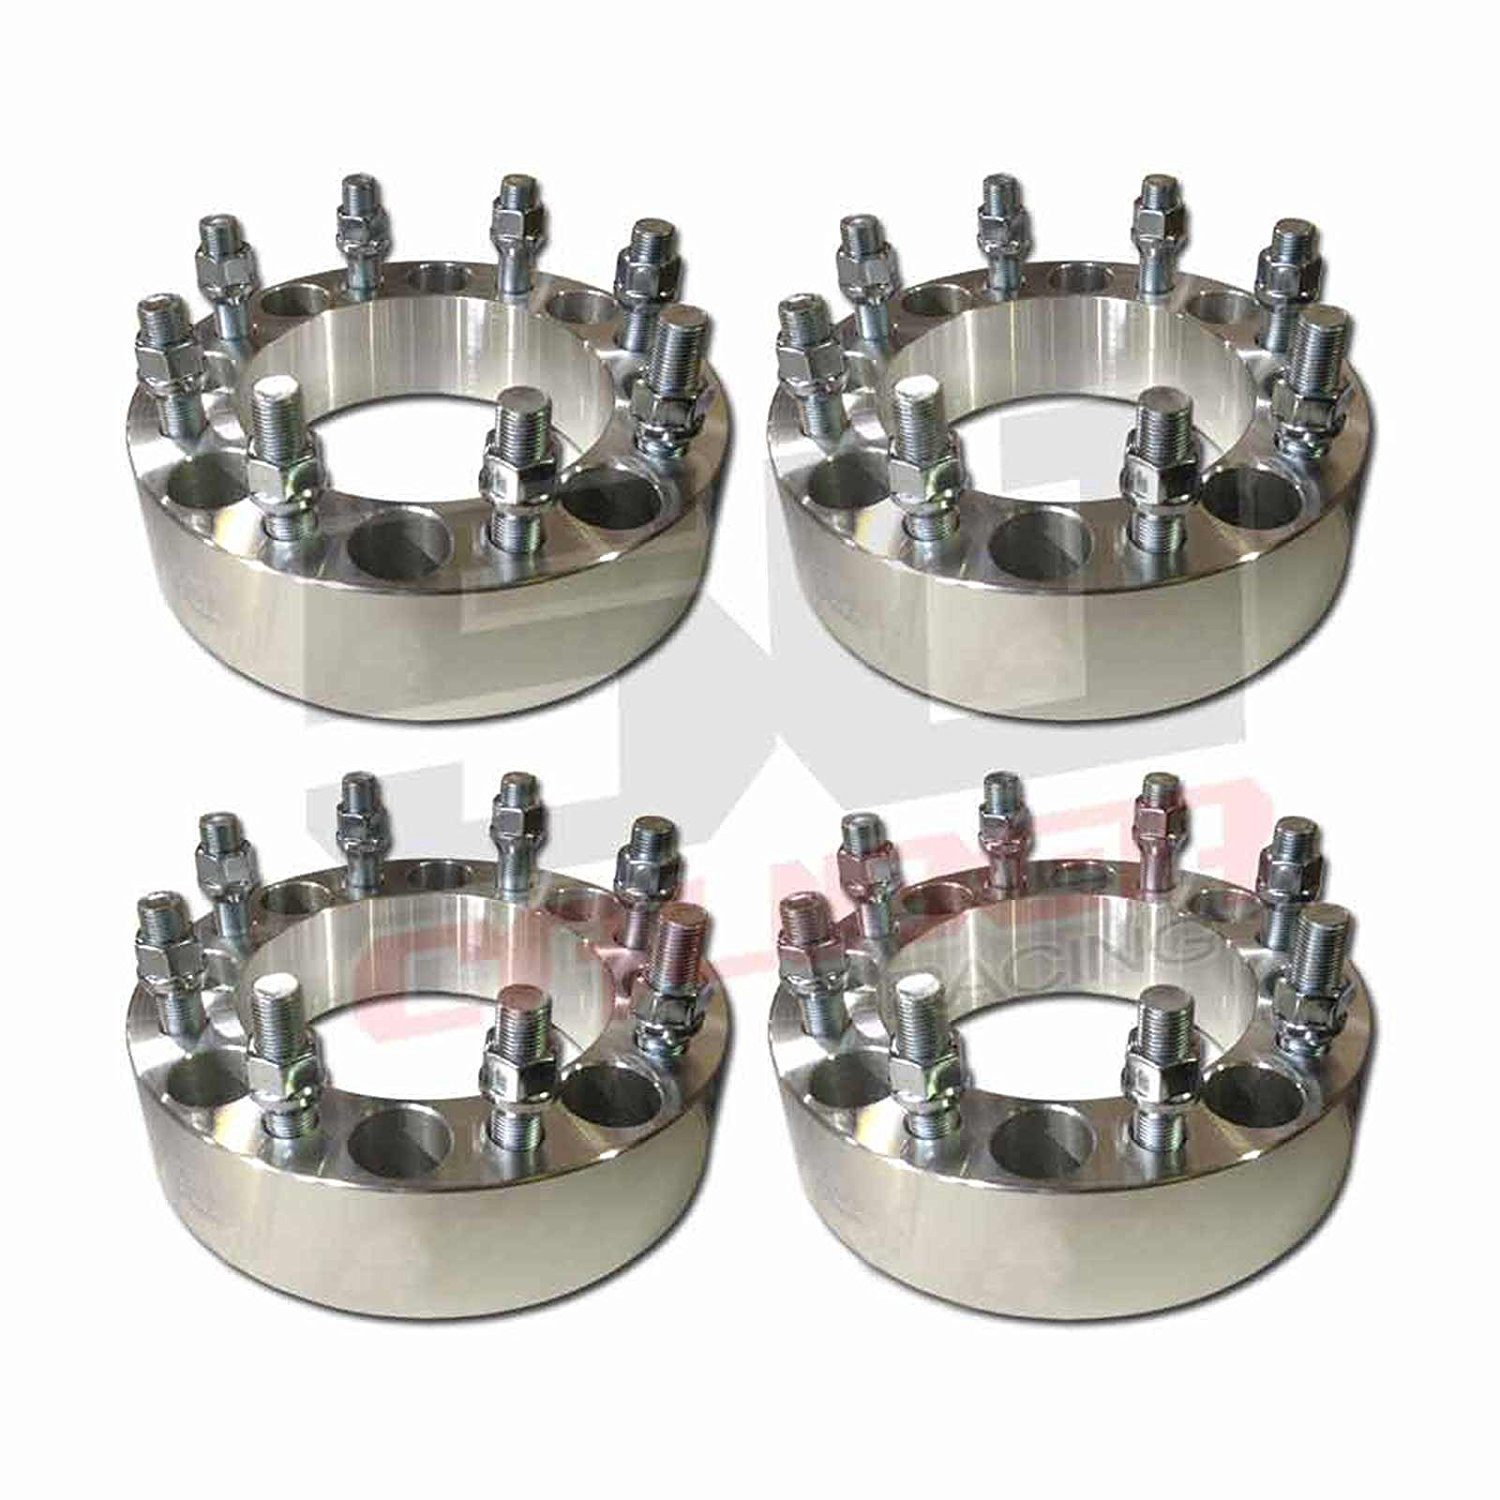 "Set of Four (4) Wheel Spacers – 8x6.5"" (8x165.1mm) Bolt Pattern, 1.5 Inch Thick 9/16"" Studs Dodge Ram Ford F-250 F-350 Chevy GMC C20, K20 [5284-A22]"